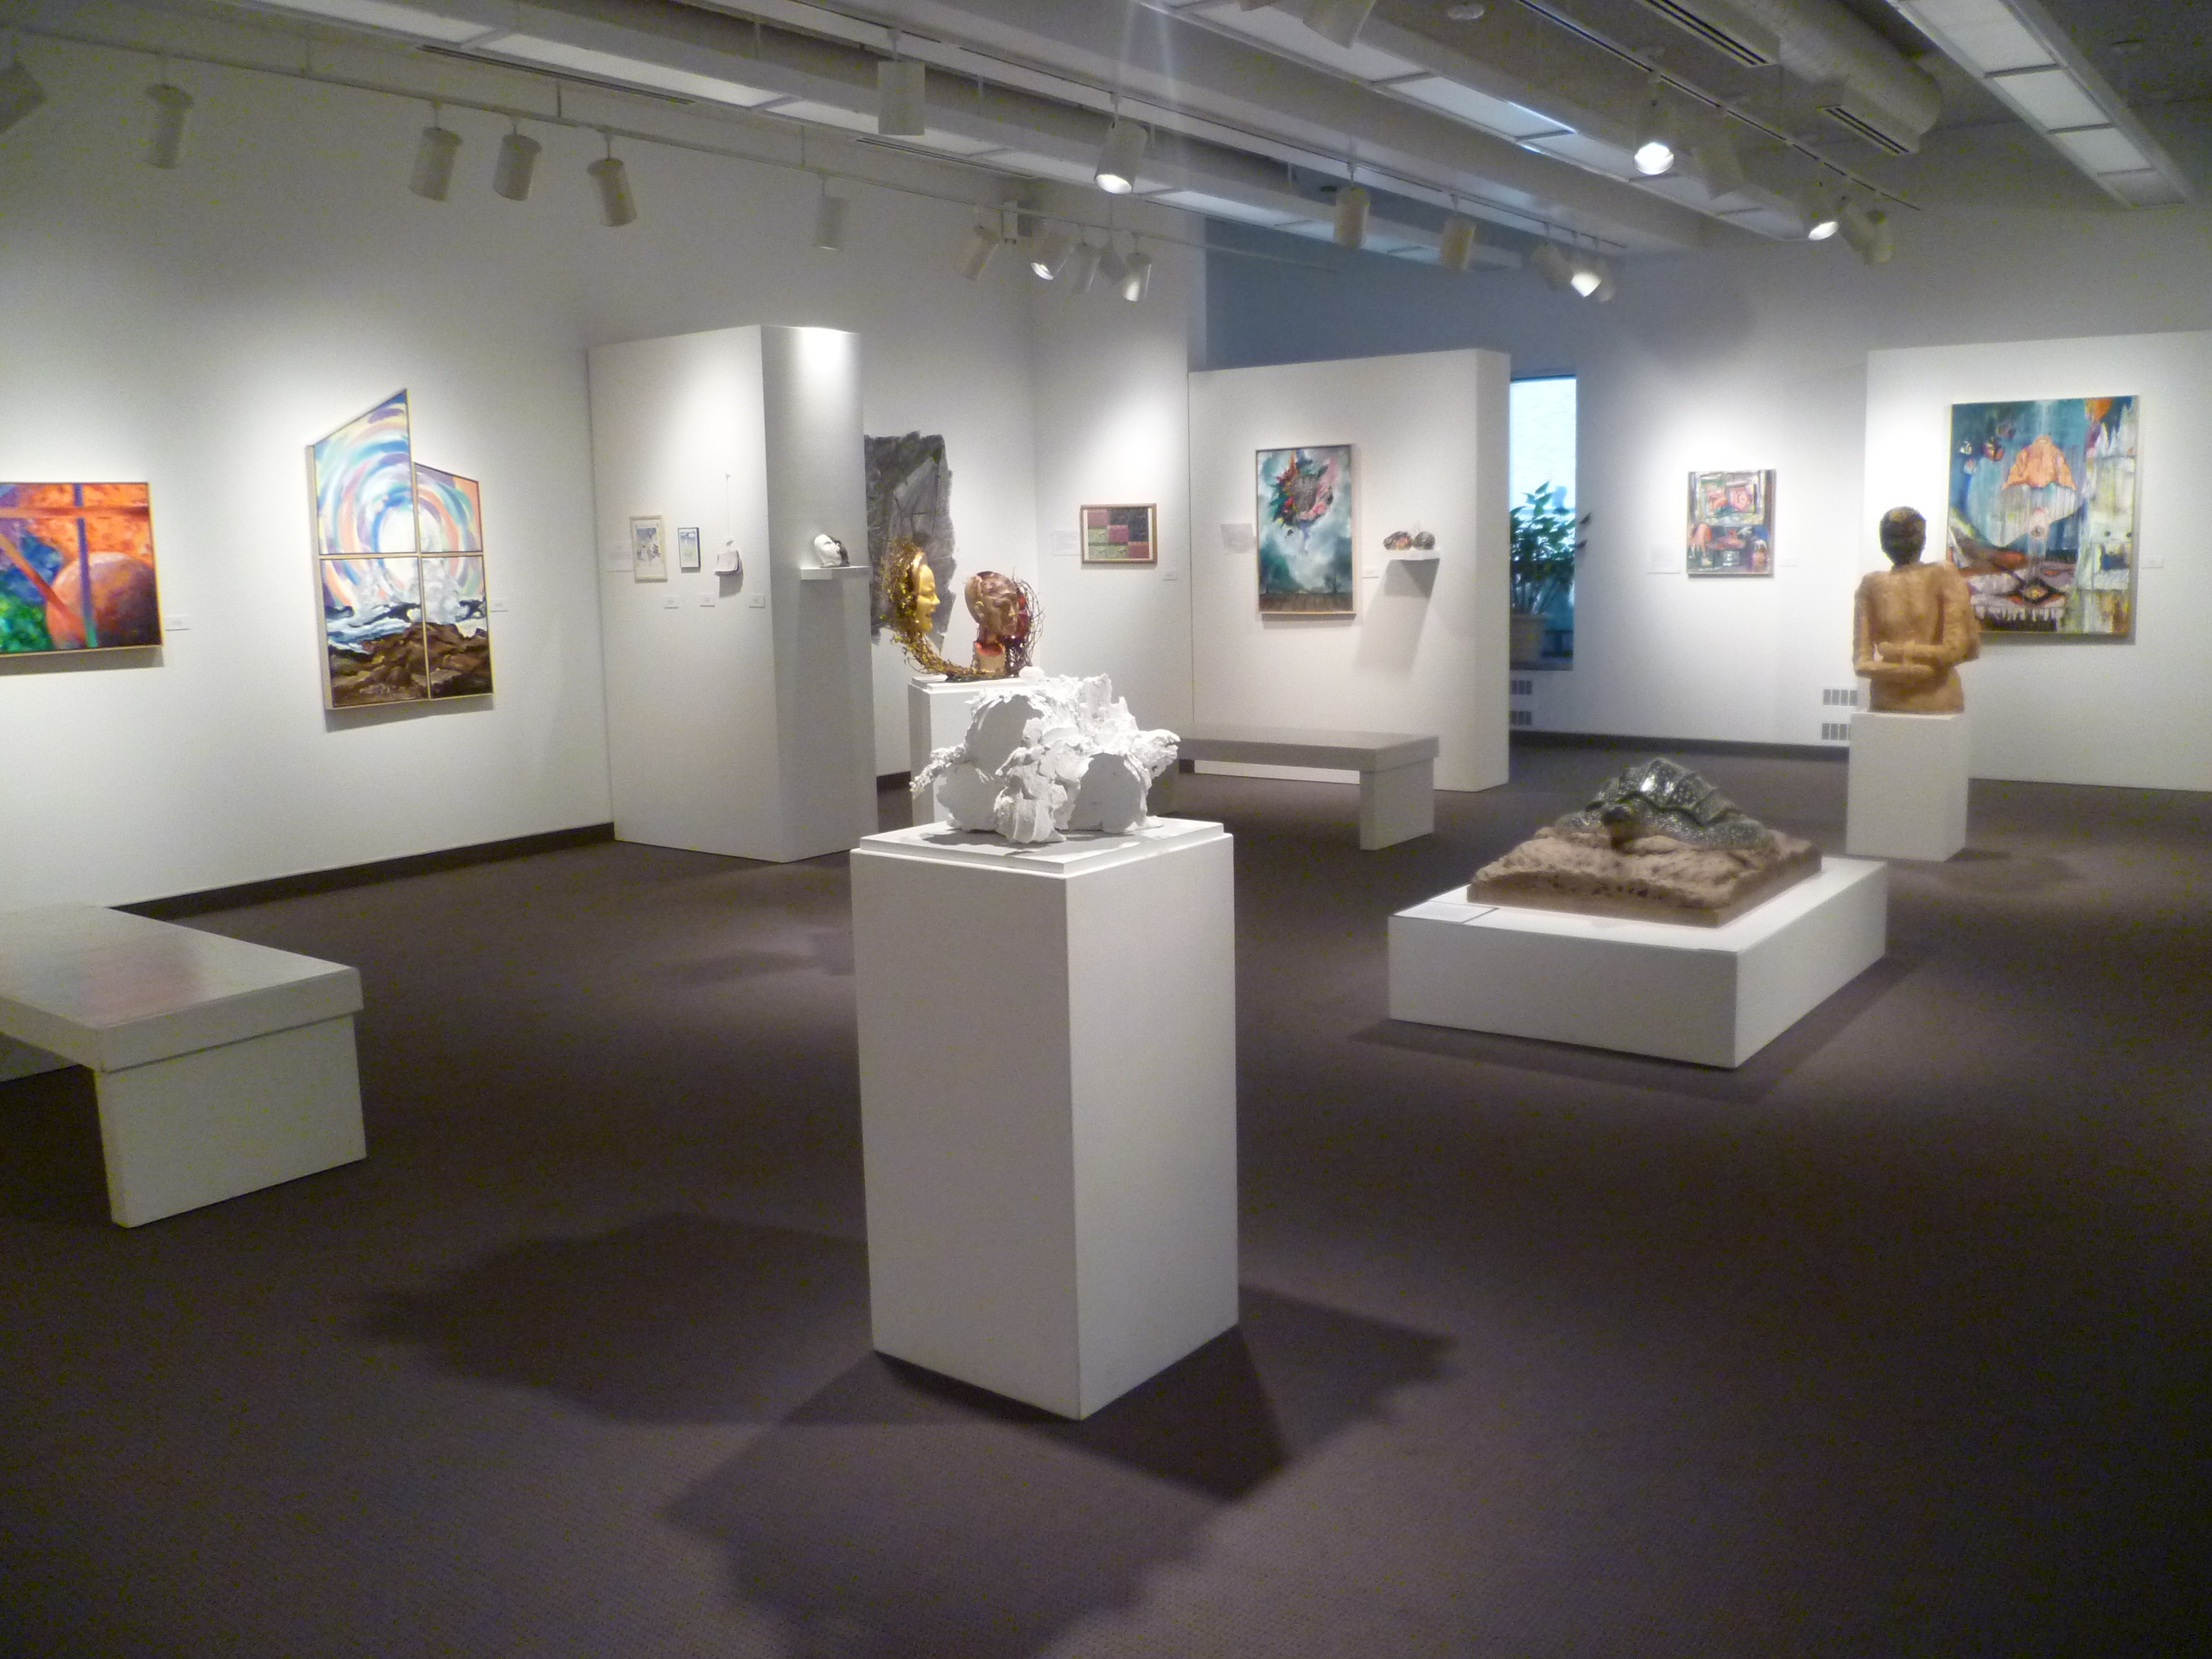 How to design an art gallery - Talley Gallery